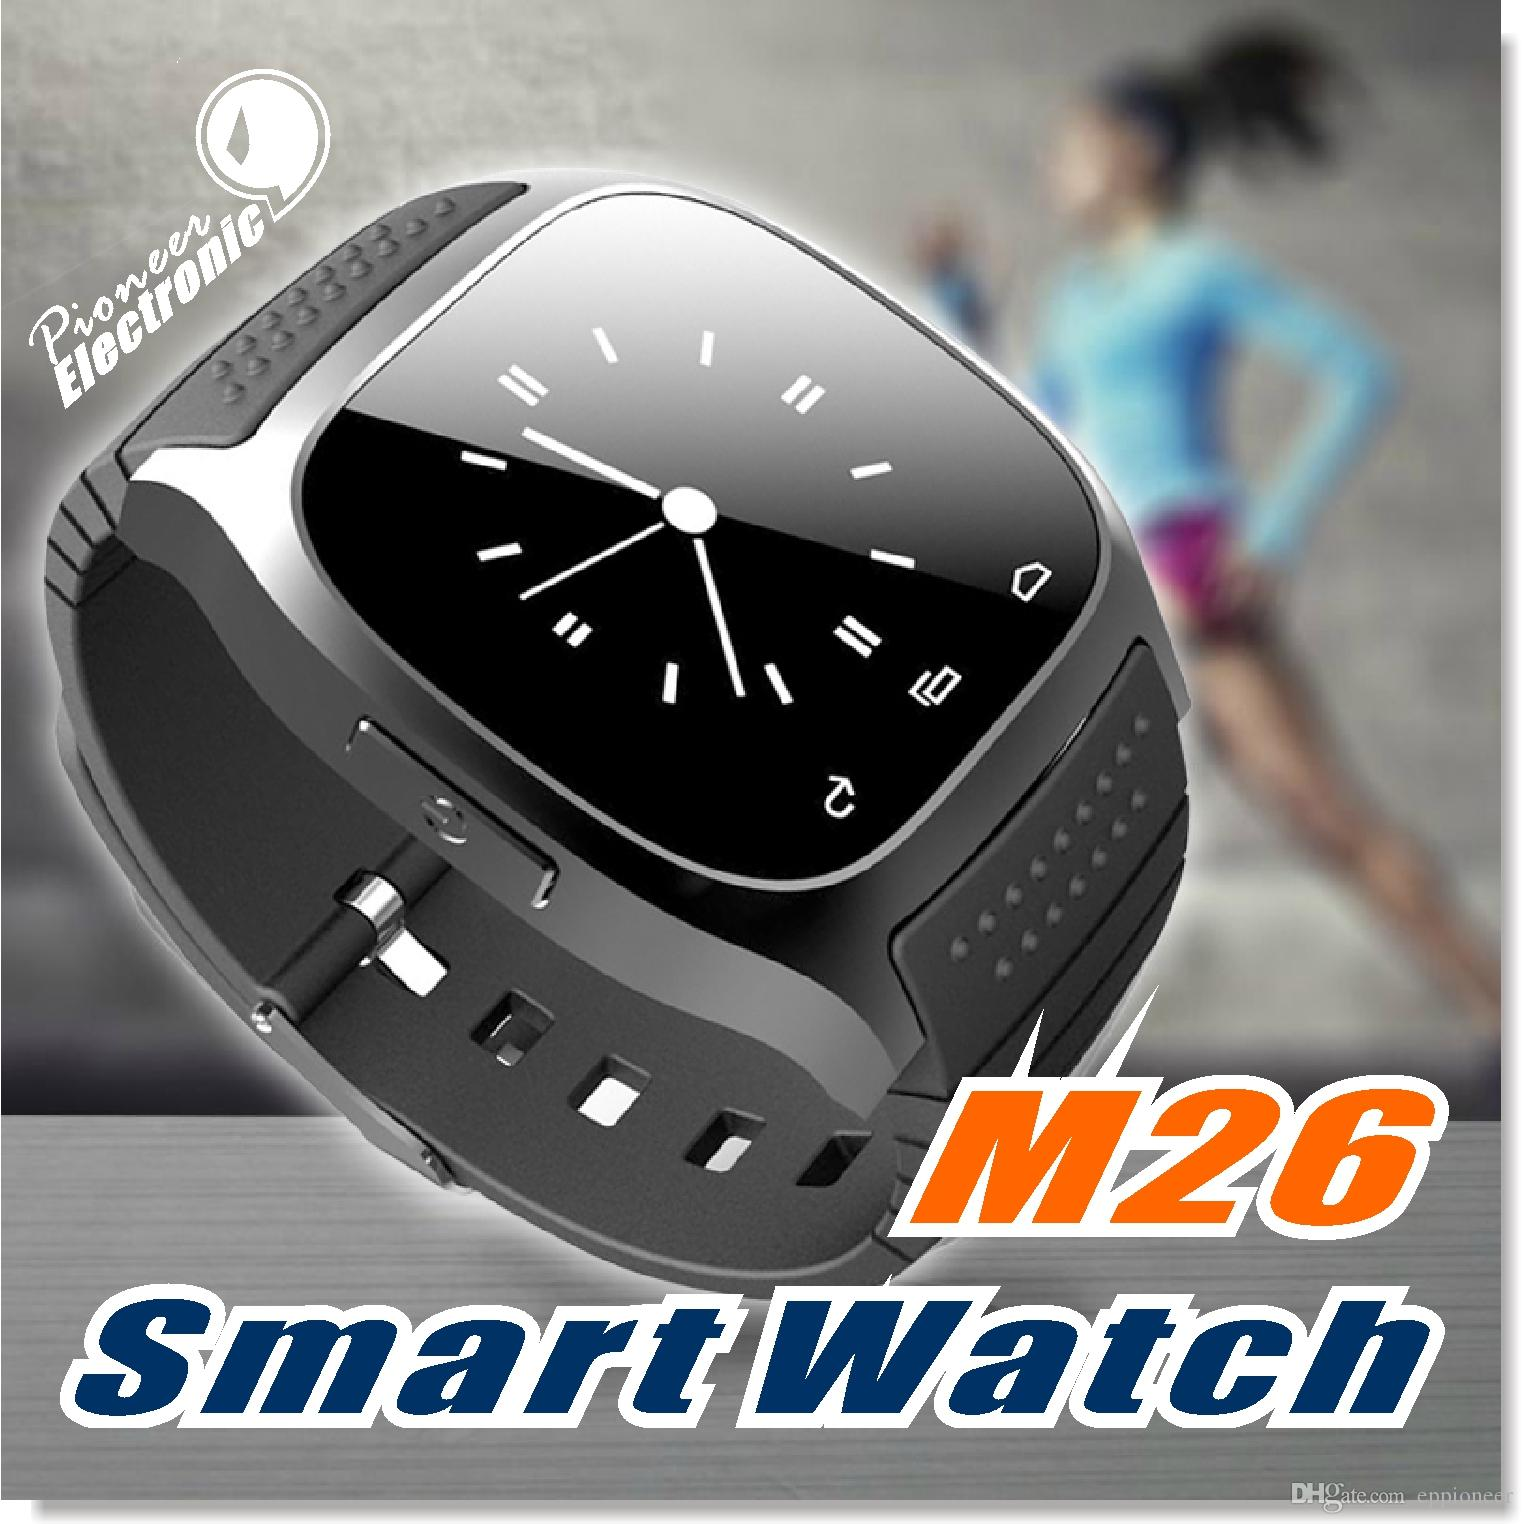 For apple iphone M26 smartwatch Bluetooth Smart Watch Phone with Camera Remote Control Anti-lost alarm Barometer smart watches